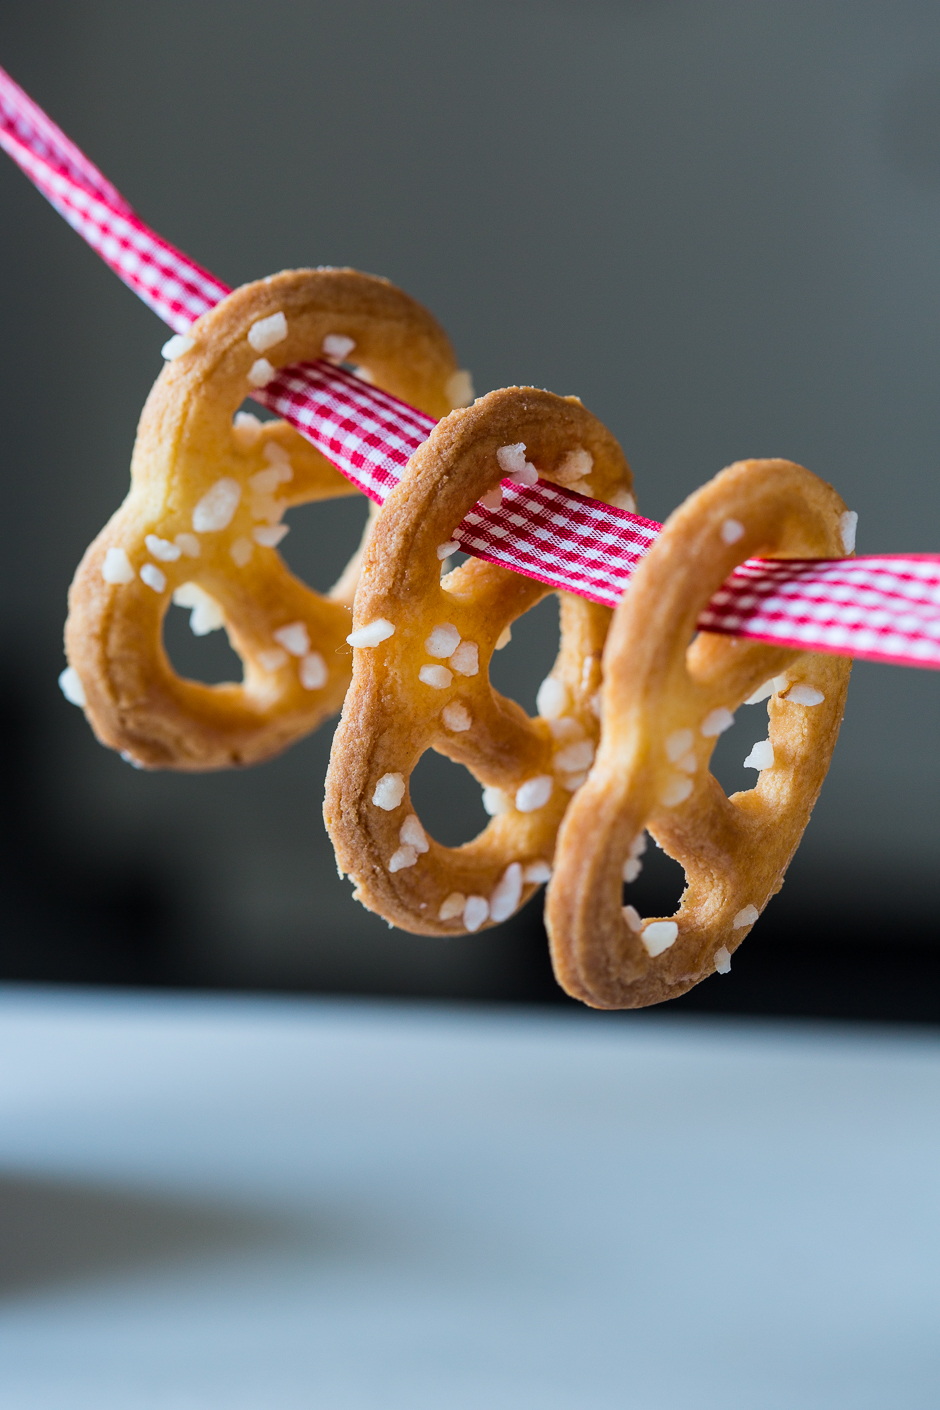 sweet pretzels from the Taste of Memories country kitchen www.tasteofmemories.com